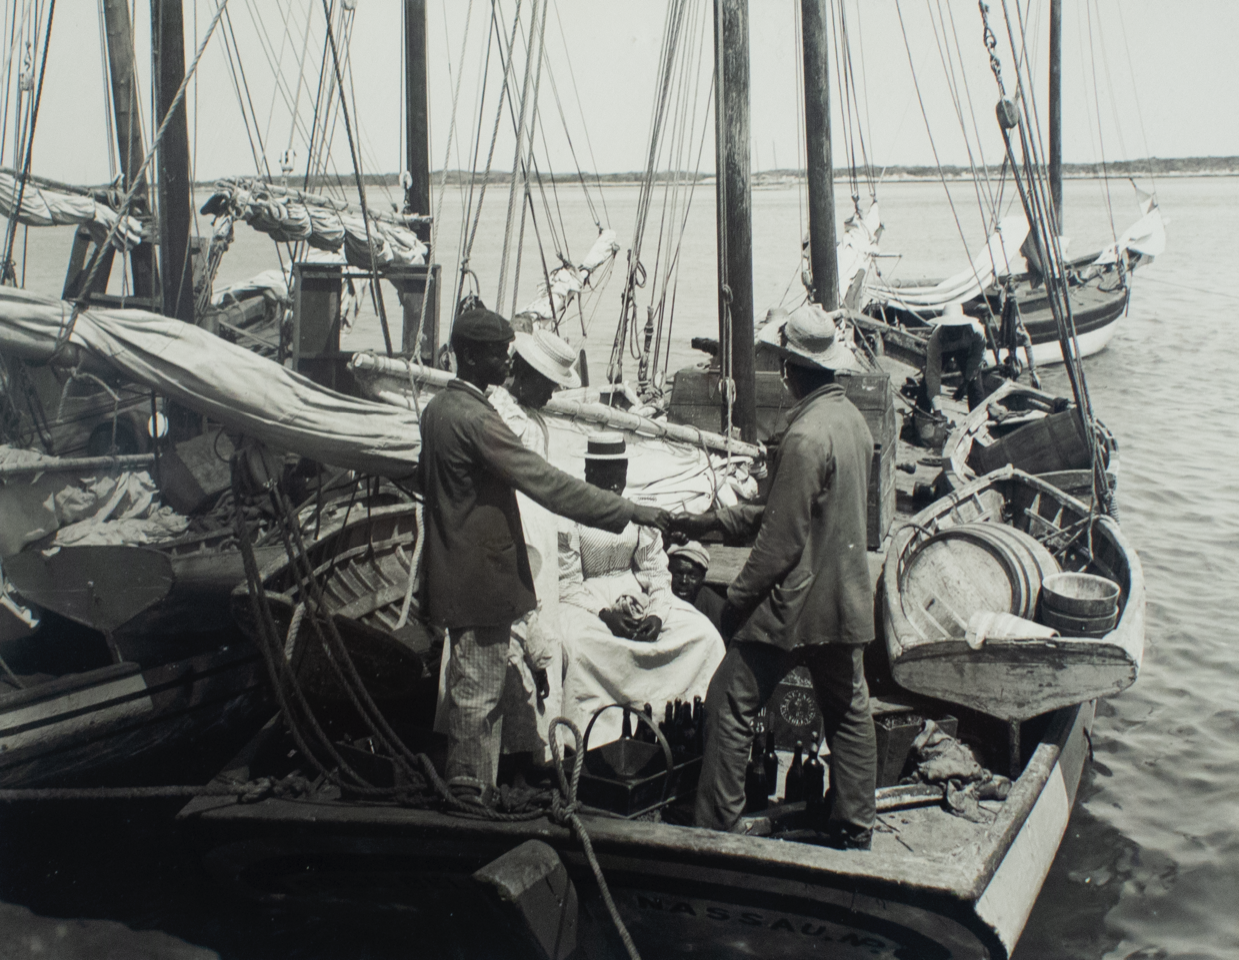 """Untitled (Boat Scene)"" (c.1920), James O. ""Doc"" Sands, digital print on archival paper, 11 x 14. Part of the National Collection and currently on display in ""Hard Mouth: From the Tongue of the Ocean""."